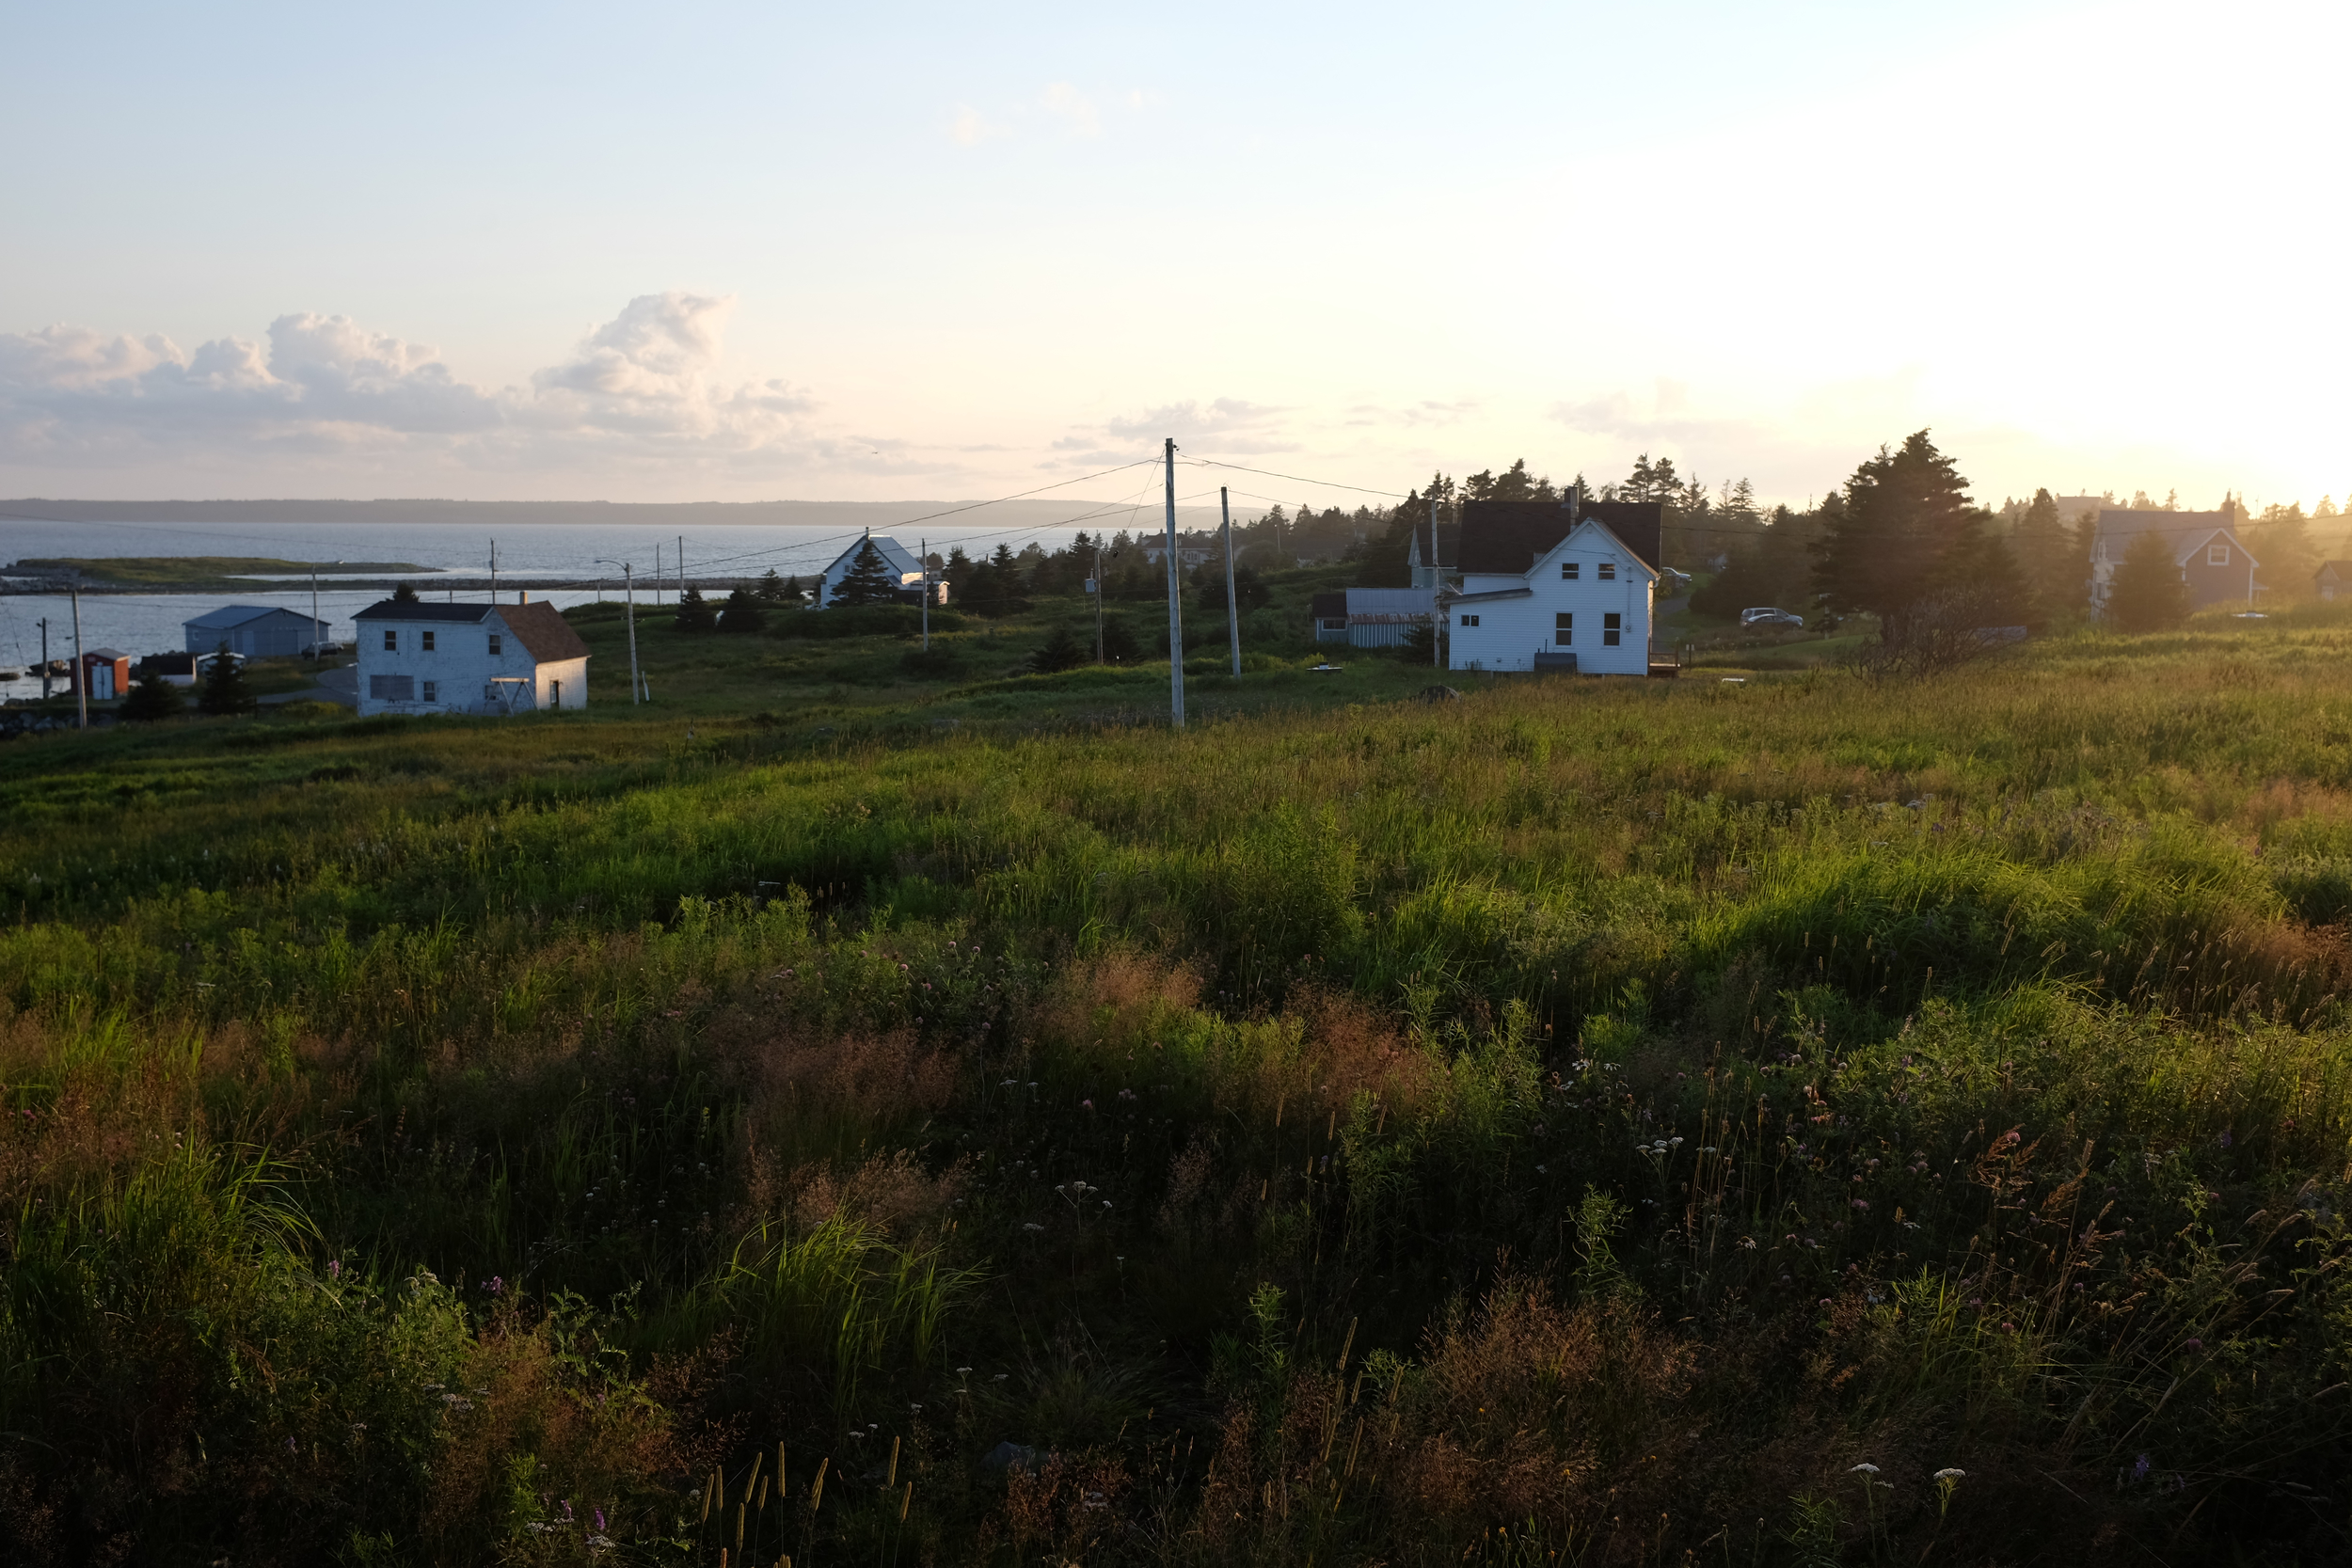 evening sun in Guysborough County, NS